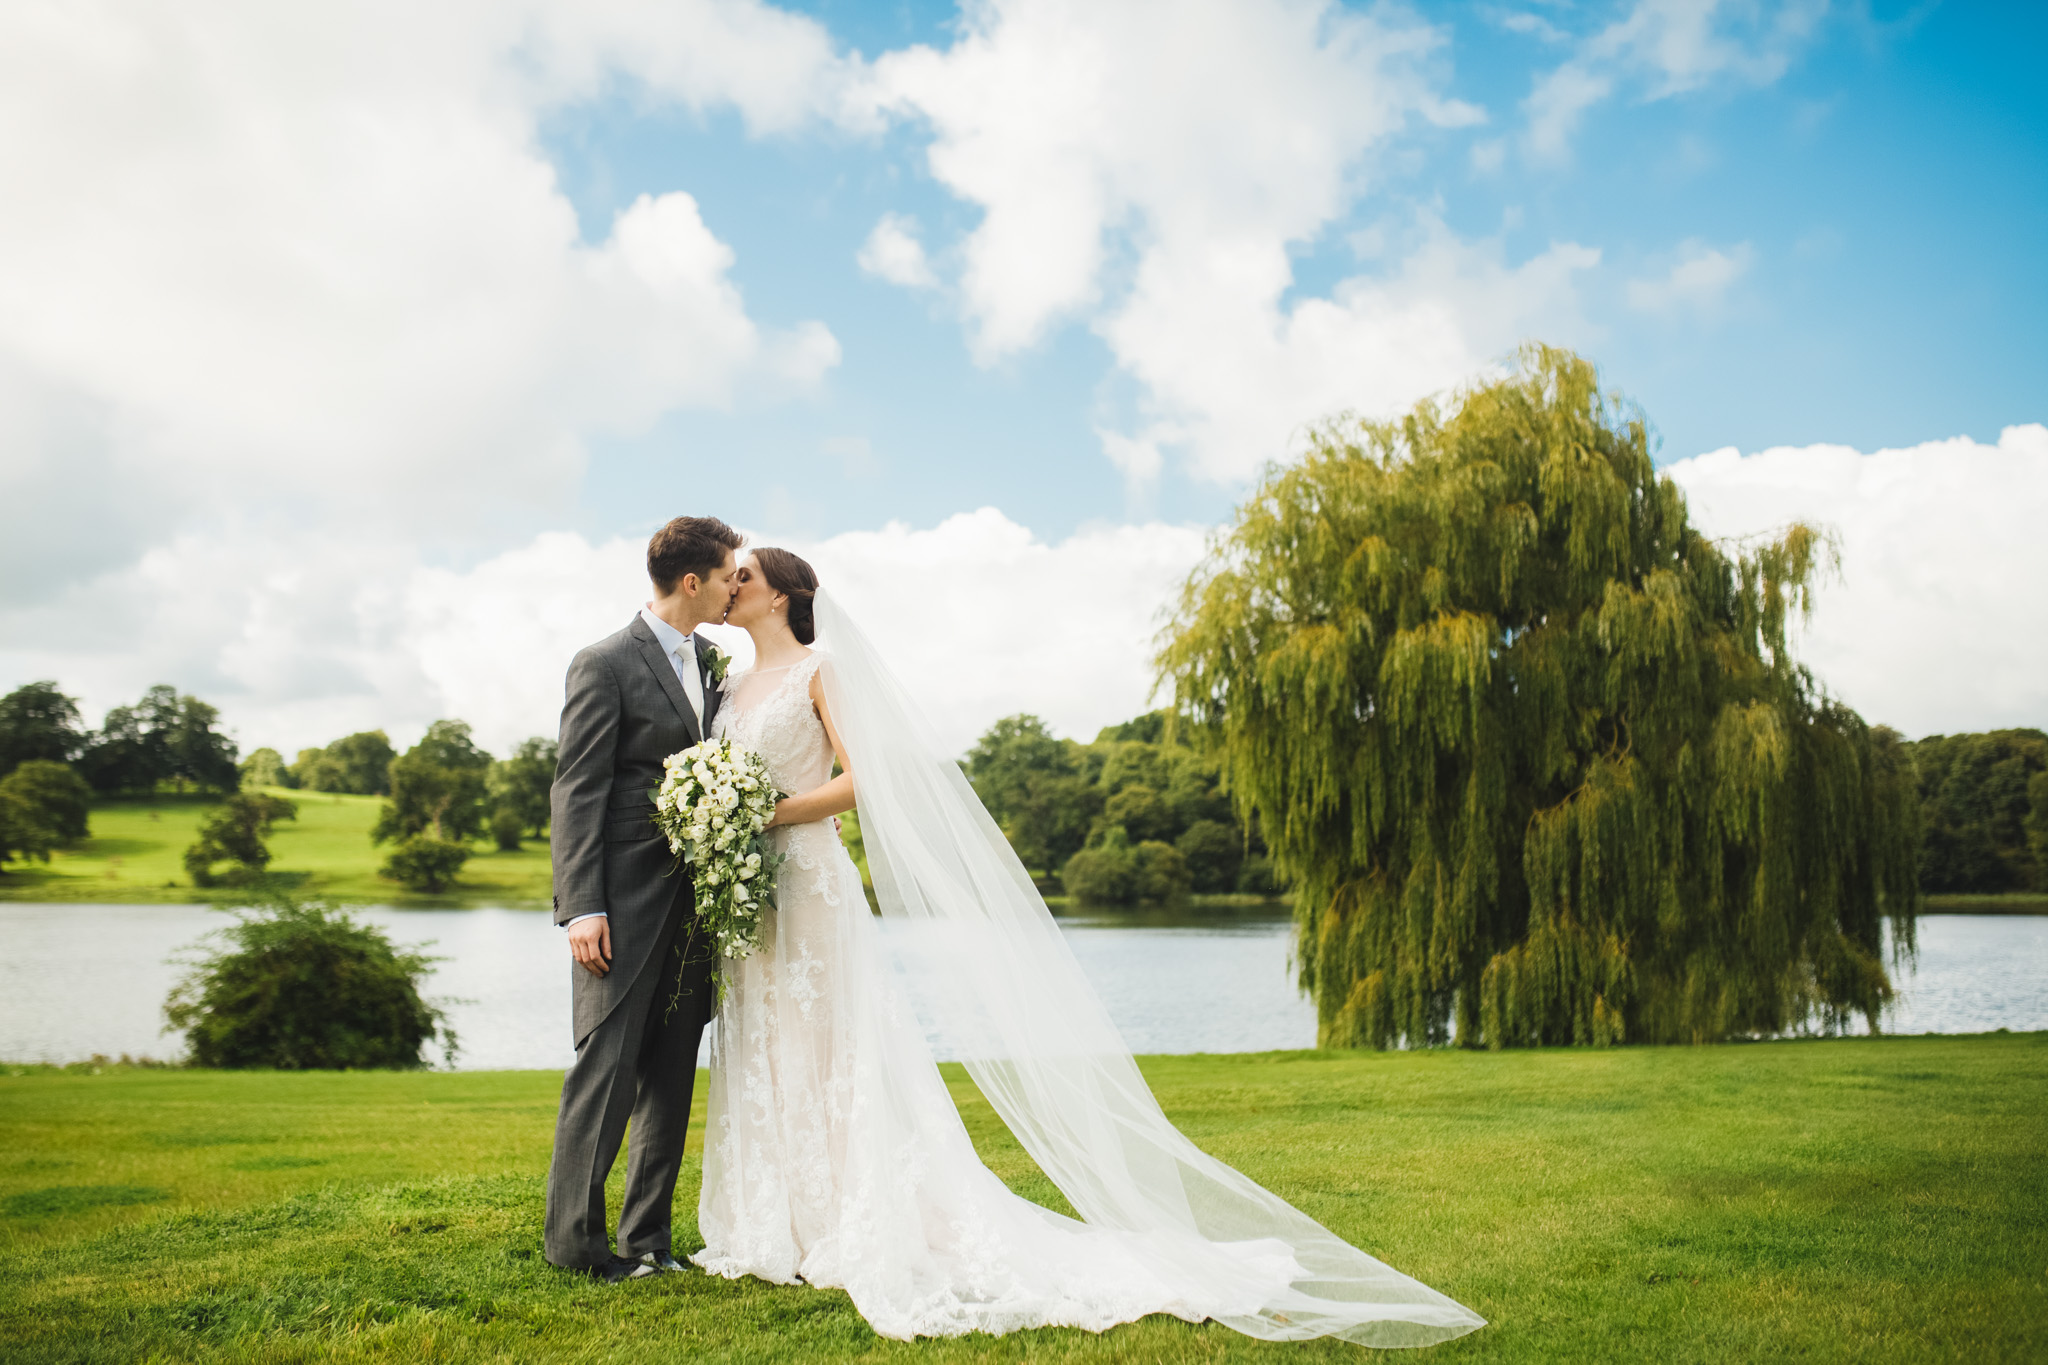 cat-lane-weddings__combermere-abbey-wedding-photography__clw__1445__38A0961.jpg